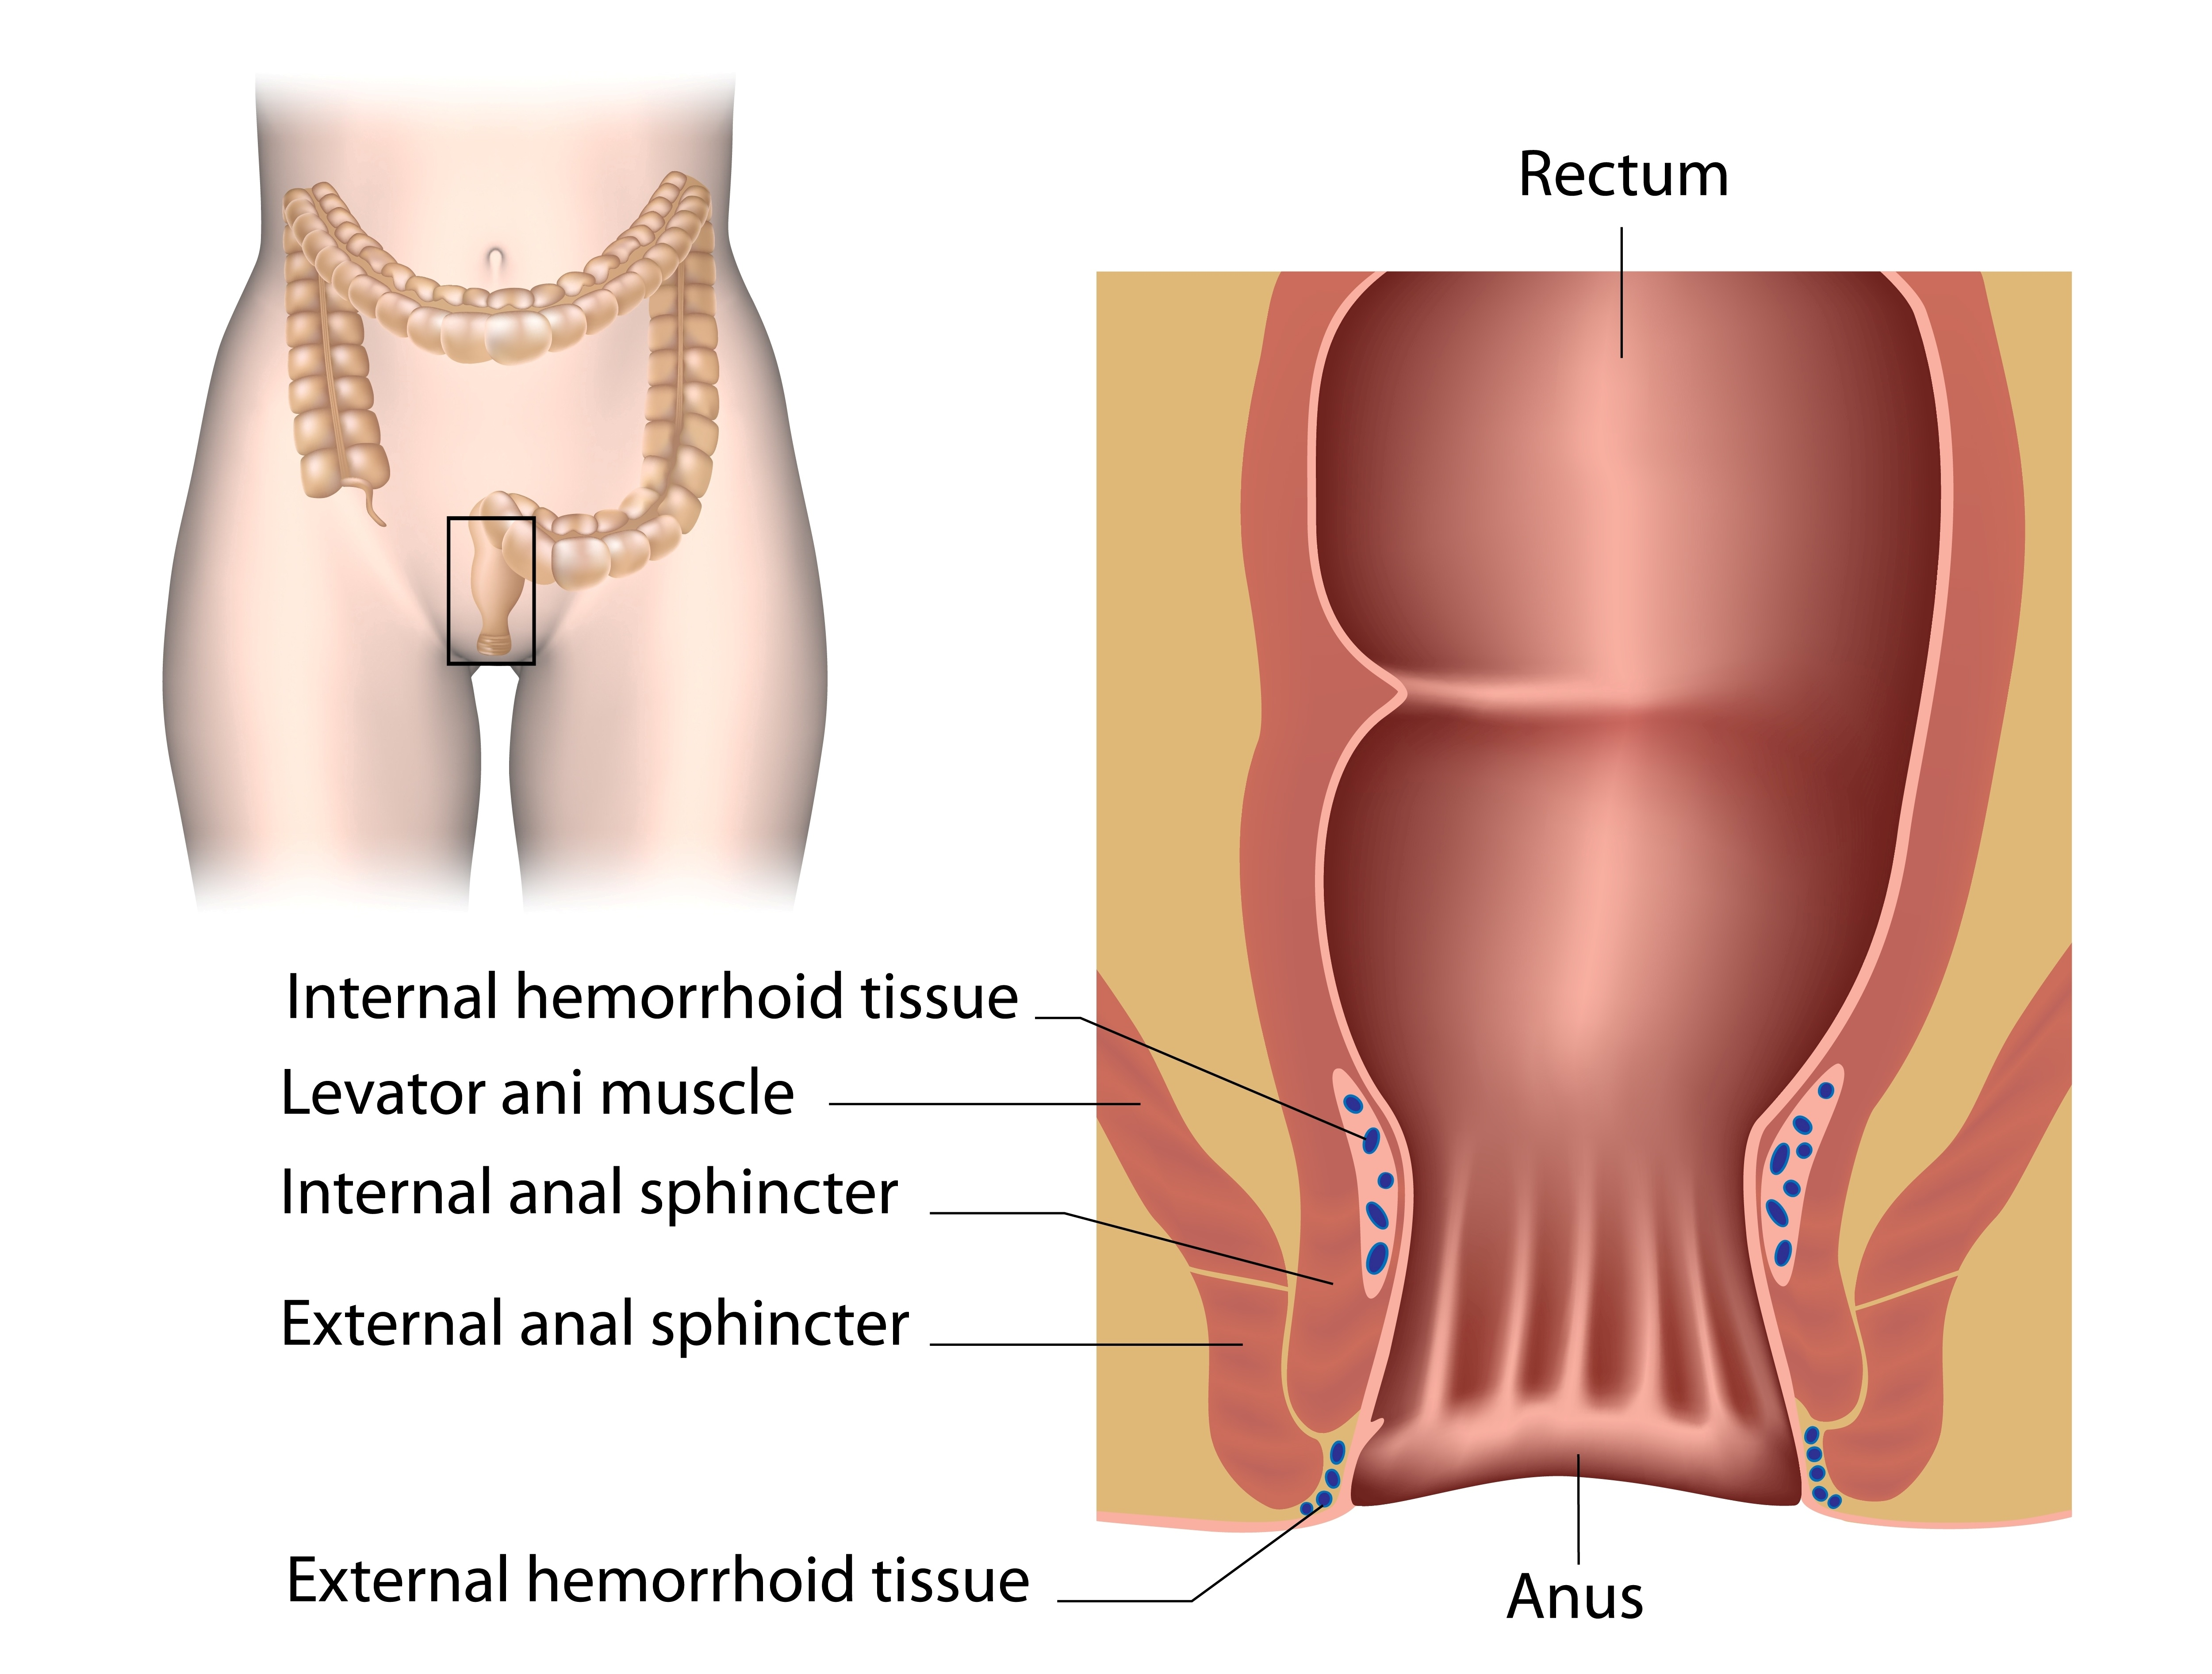 anus injury lower back in nerves